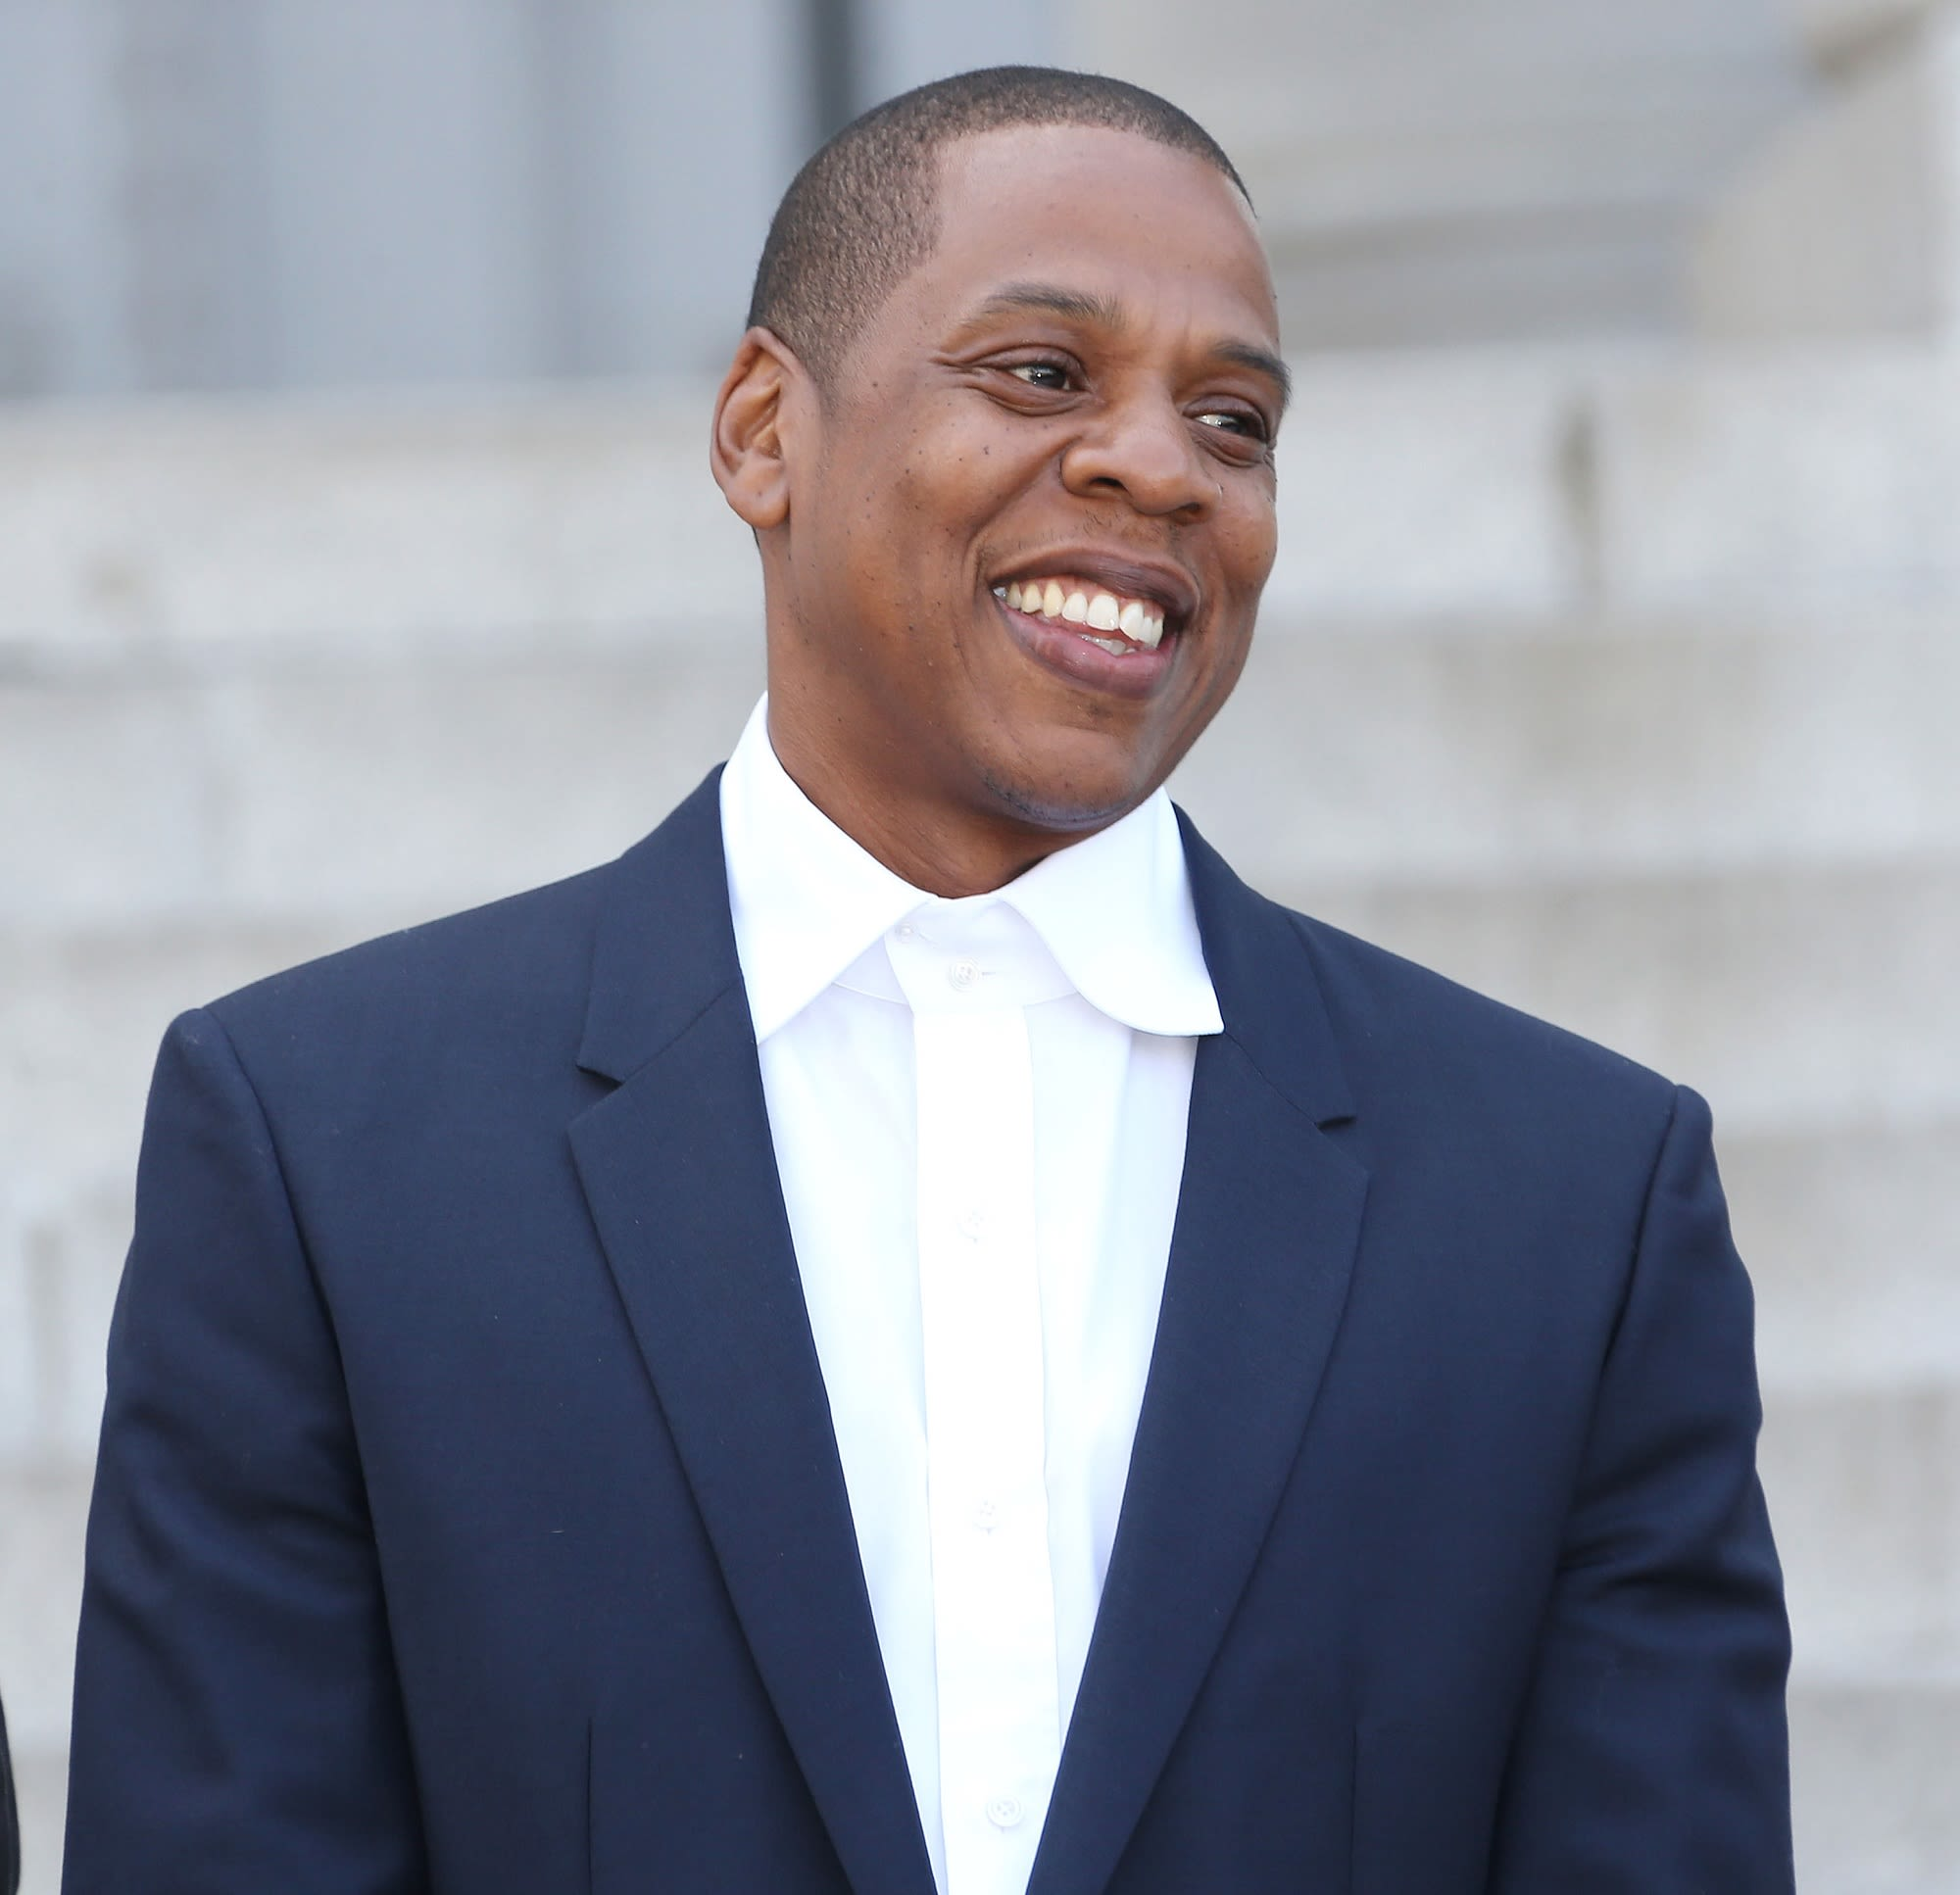 Jay Z says this is the 'genius thing' he did when starting out in the music business